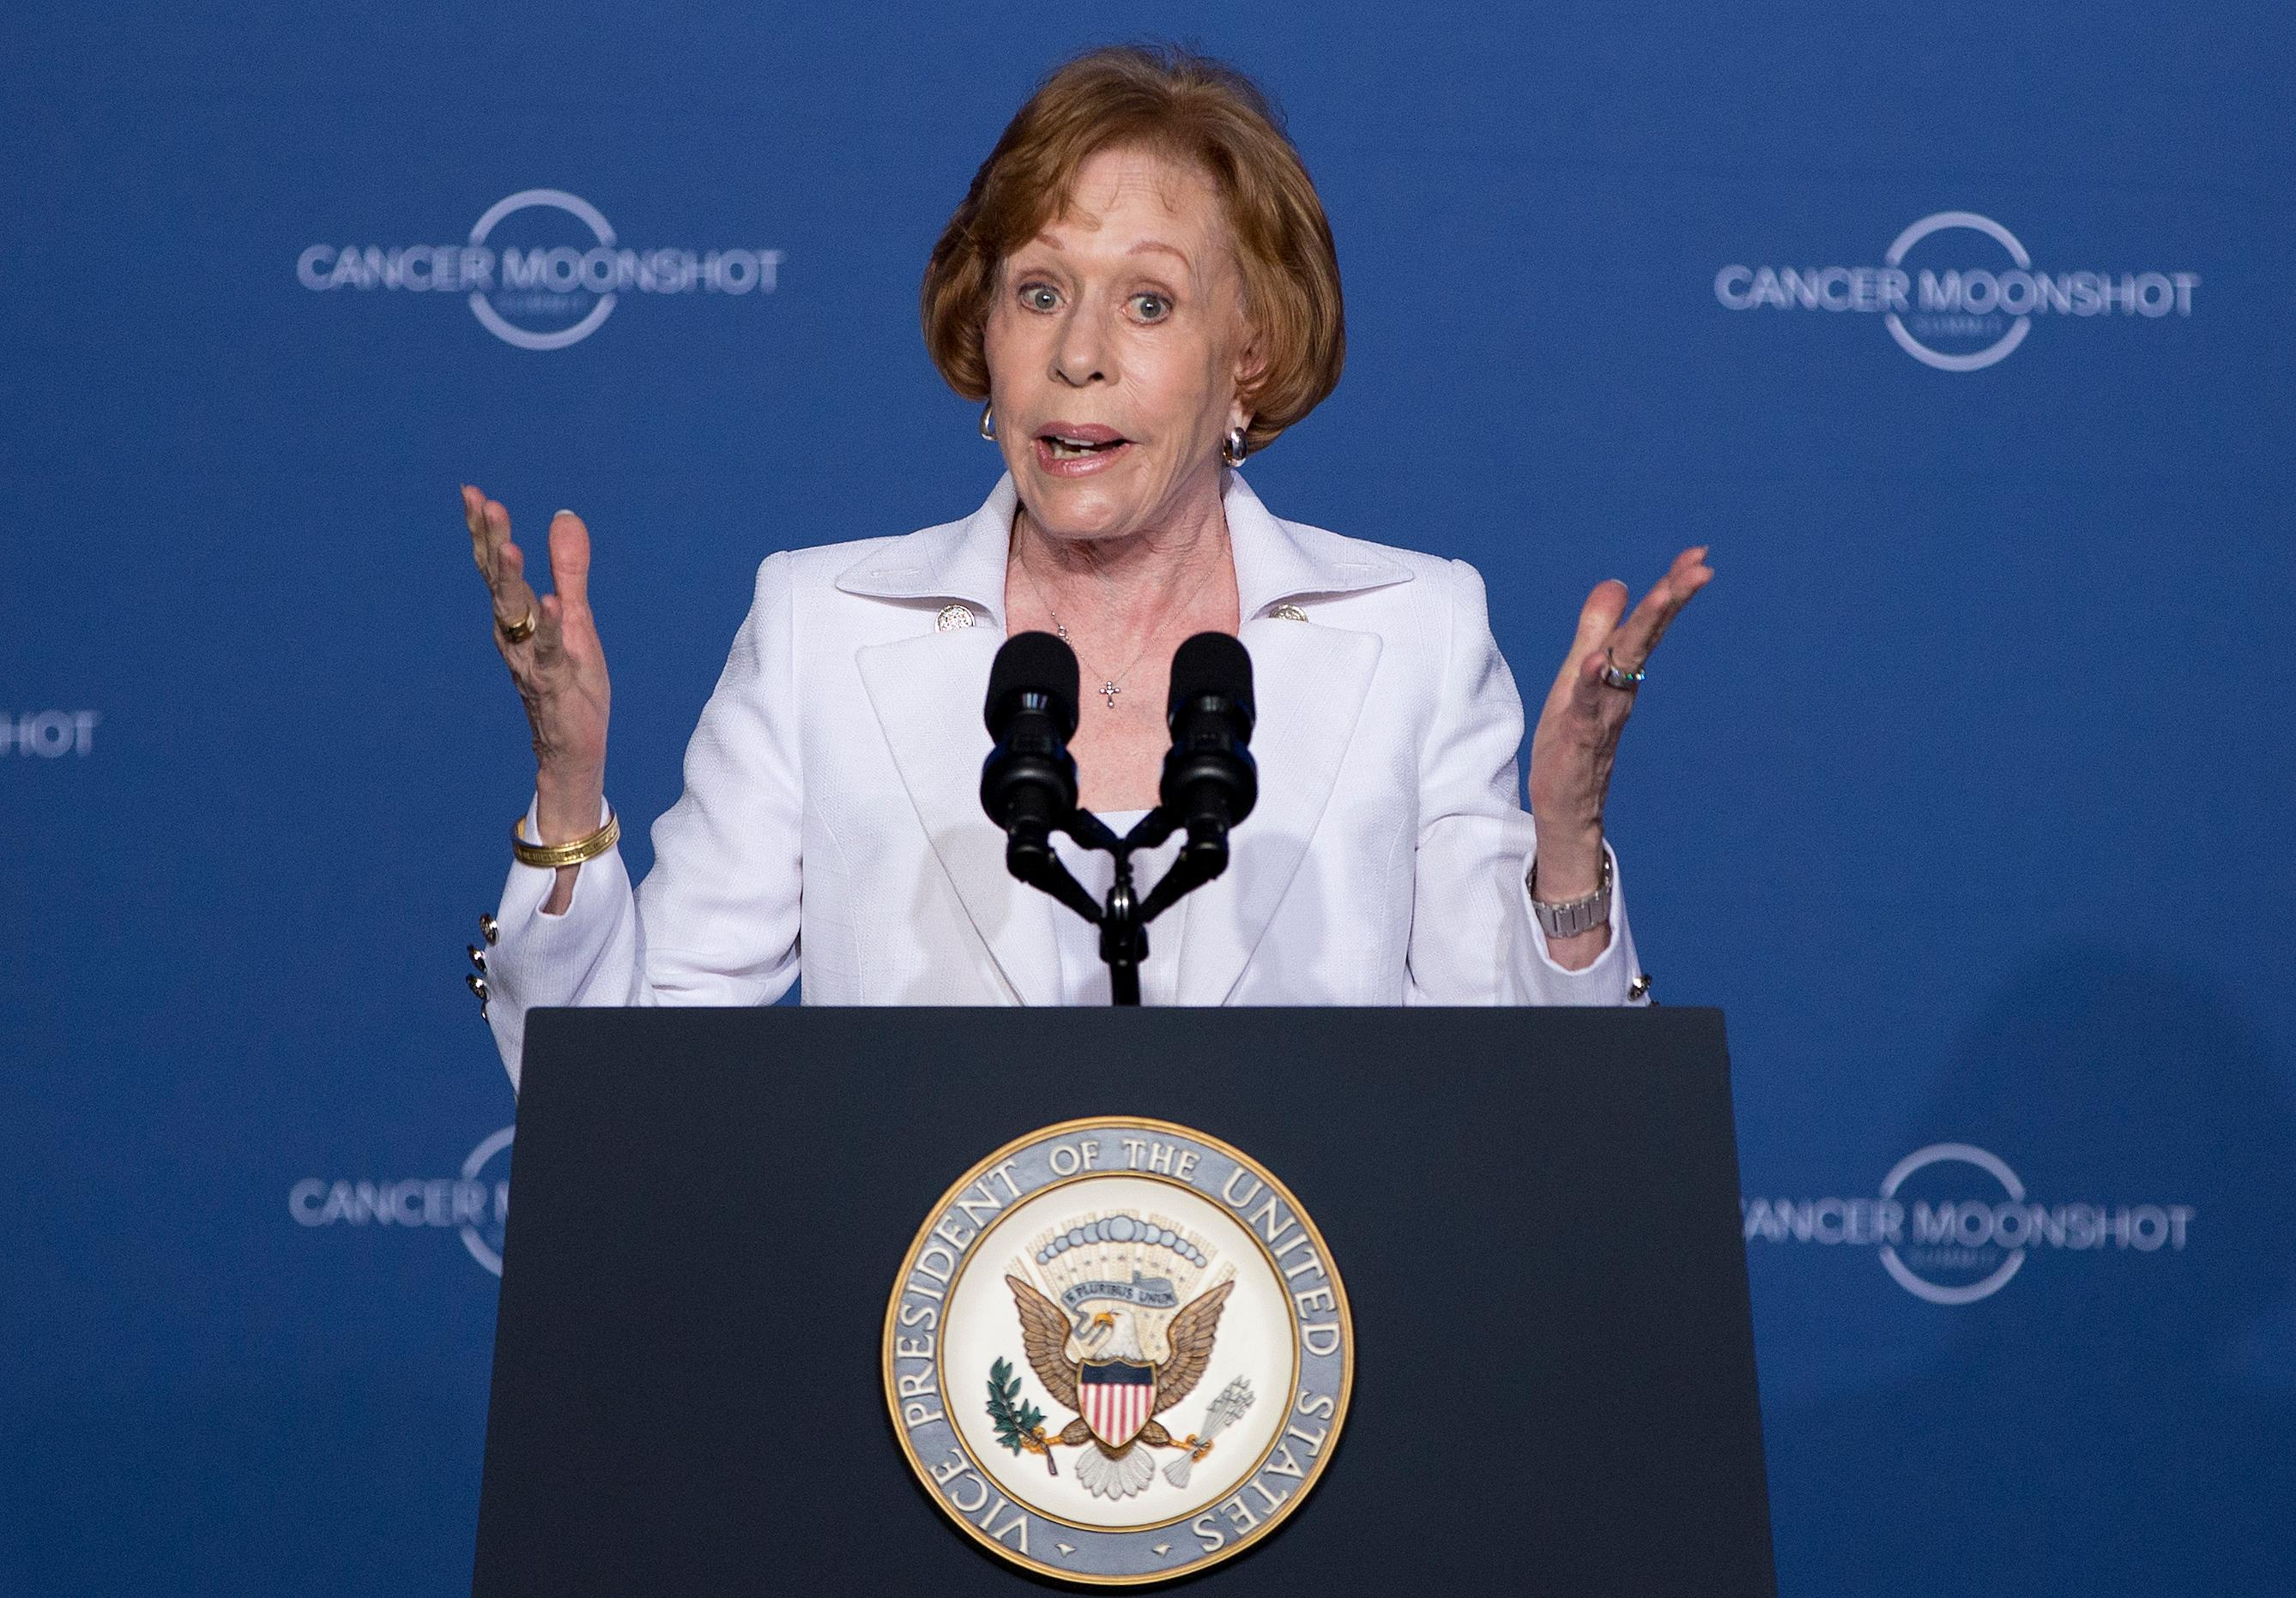 FILE - In this June 29, 2016, file photo, actress, comedian Carol Burnett speaks at the Cancer Moonshot Summit at Howard University in Washington before introducing Vice President Joe Biden. (AP Photo/Carolyn Kaster, File)